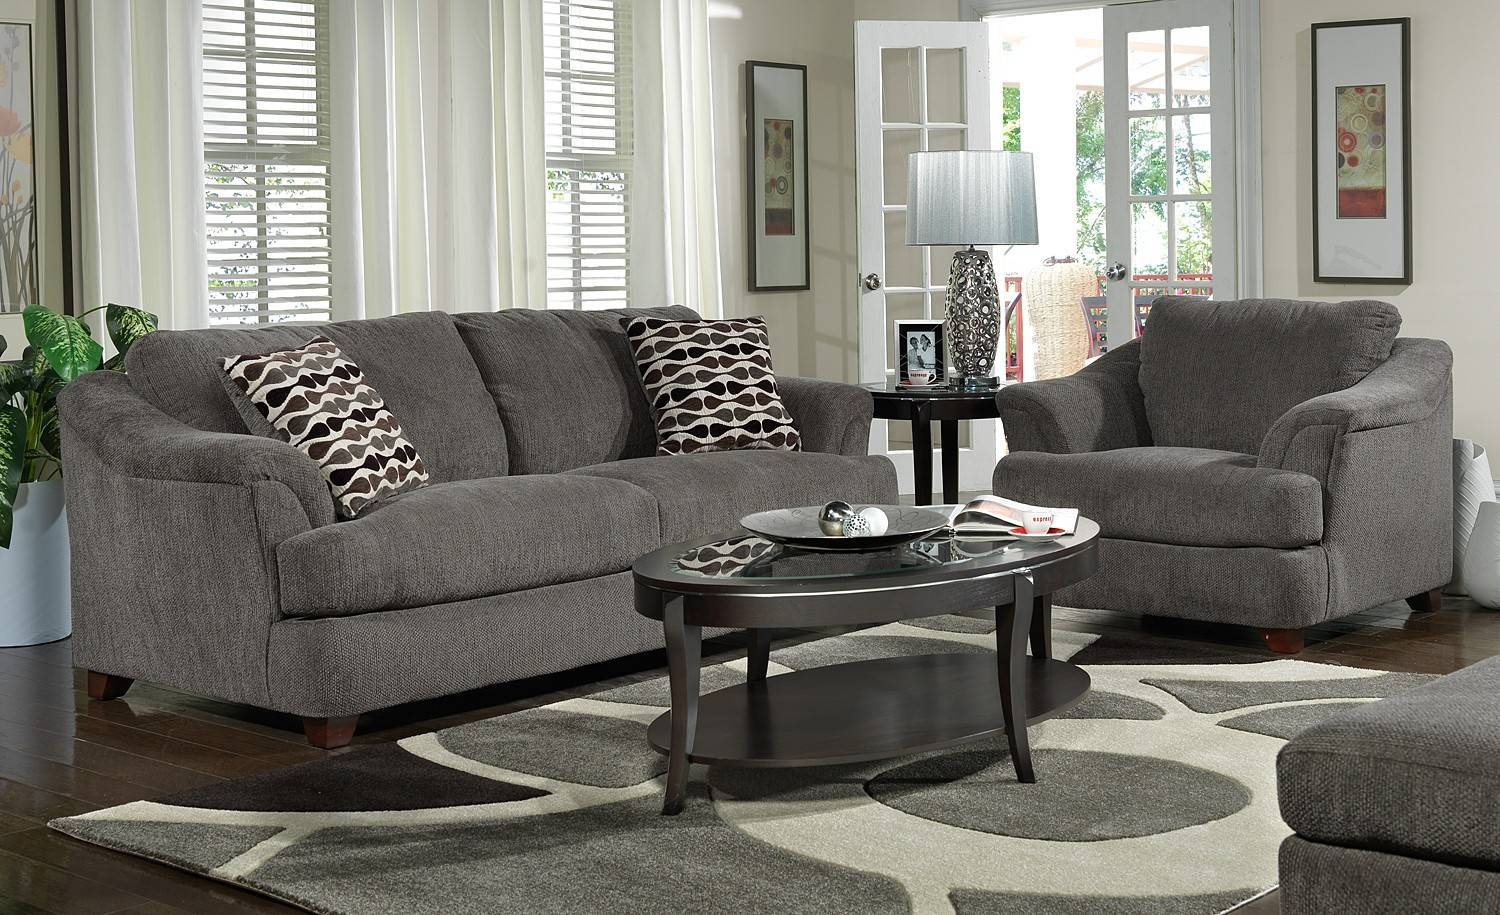 Dark Grey Sofa Living Room Ideas | Centerfieldbar for Gray Sofas for Living Room (Image 8 of 15)